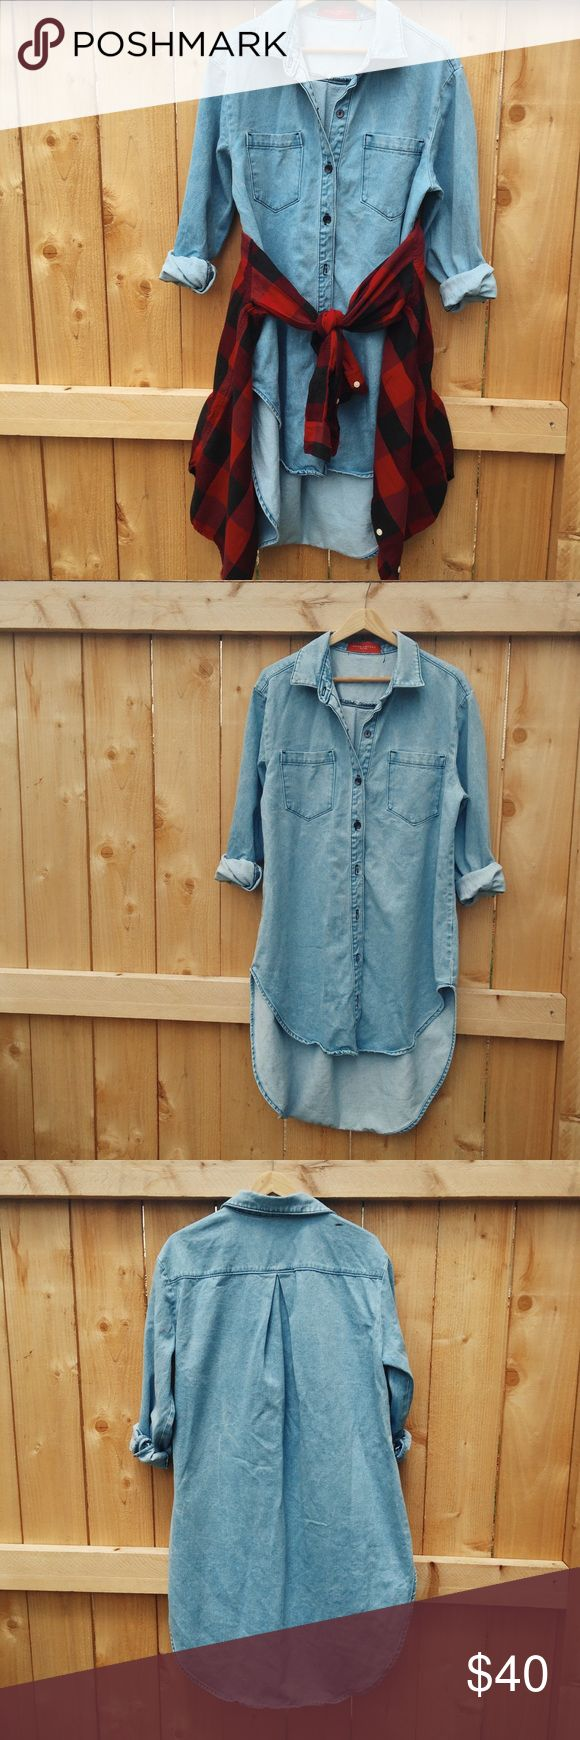 Akira Chicago Denim Dress Women's high low denim dress in size L. Fell in LOVE with it in the store but only wore once because it was too big on me. I'm terrible at ironing so please excuse the wrinkles :( AKIRA Dresses High Low